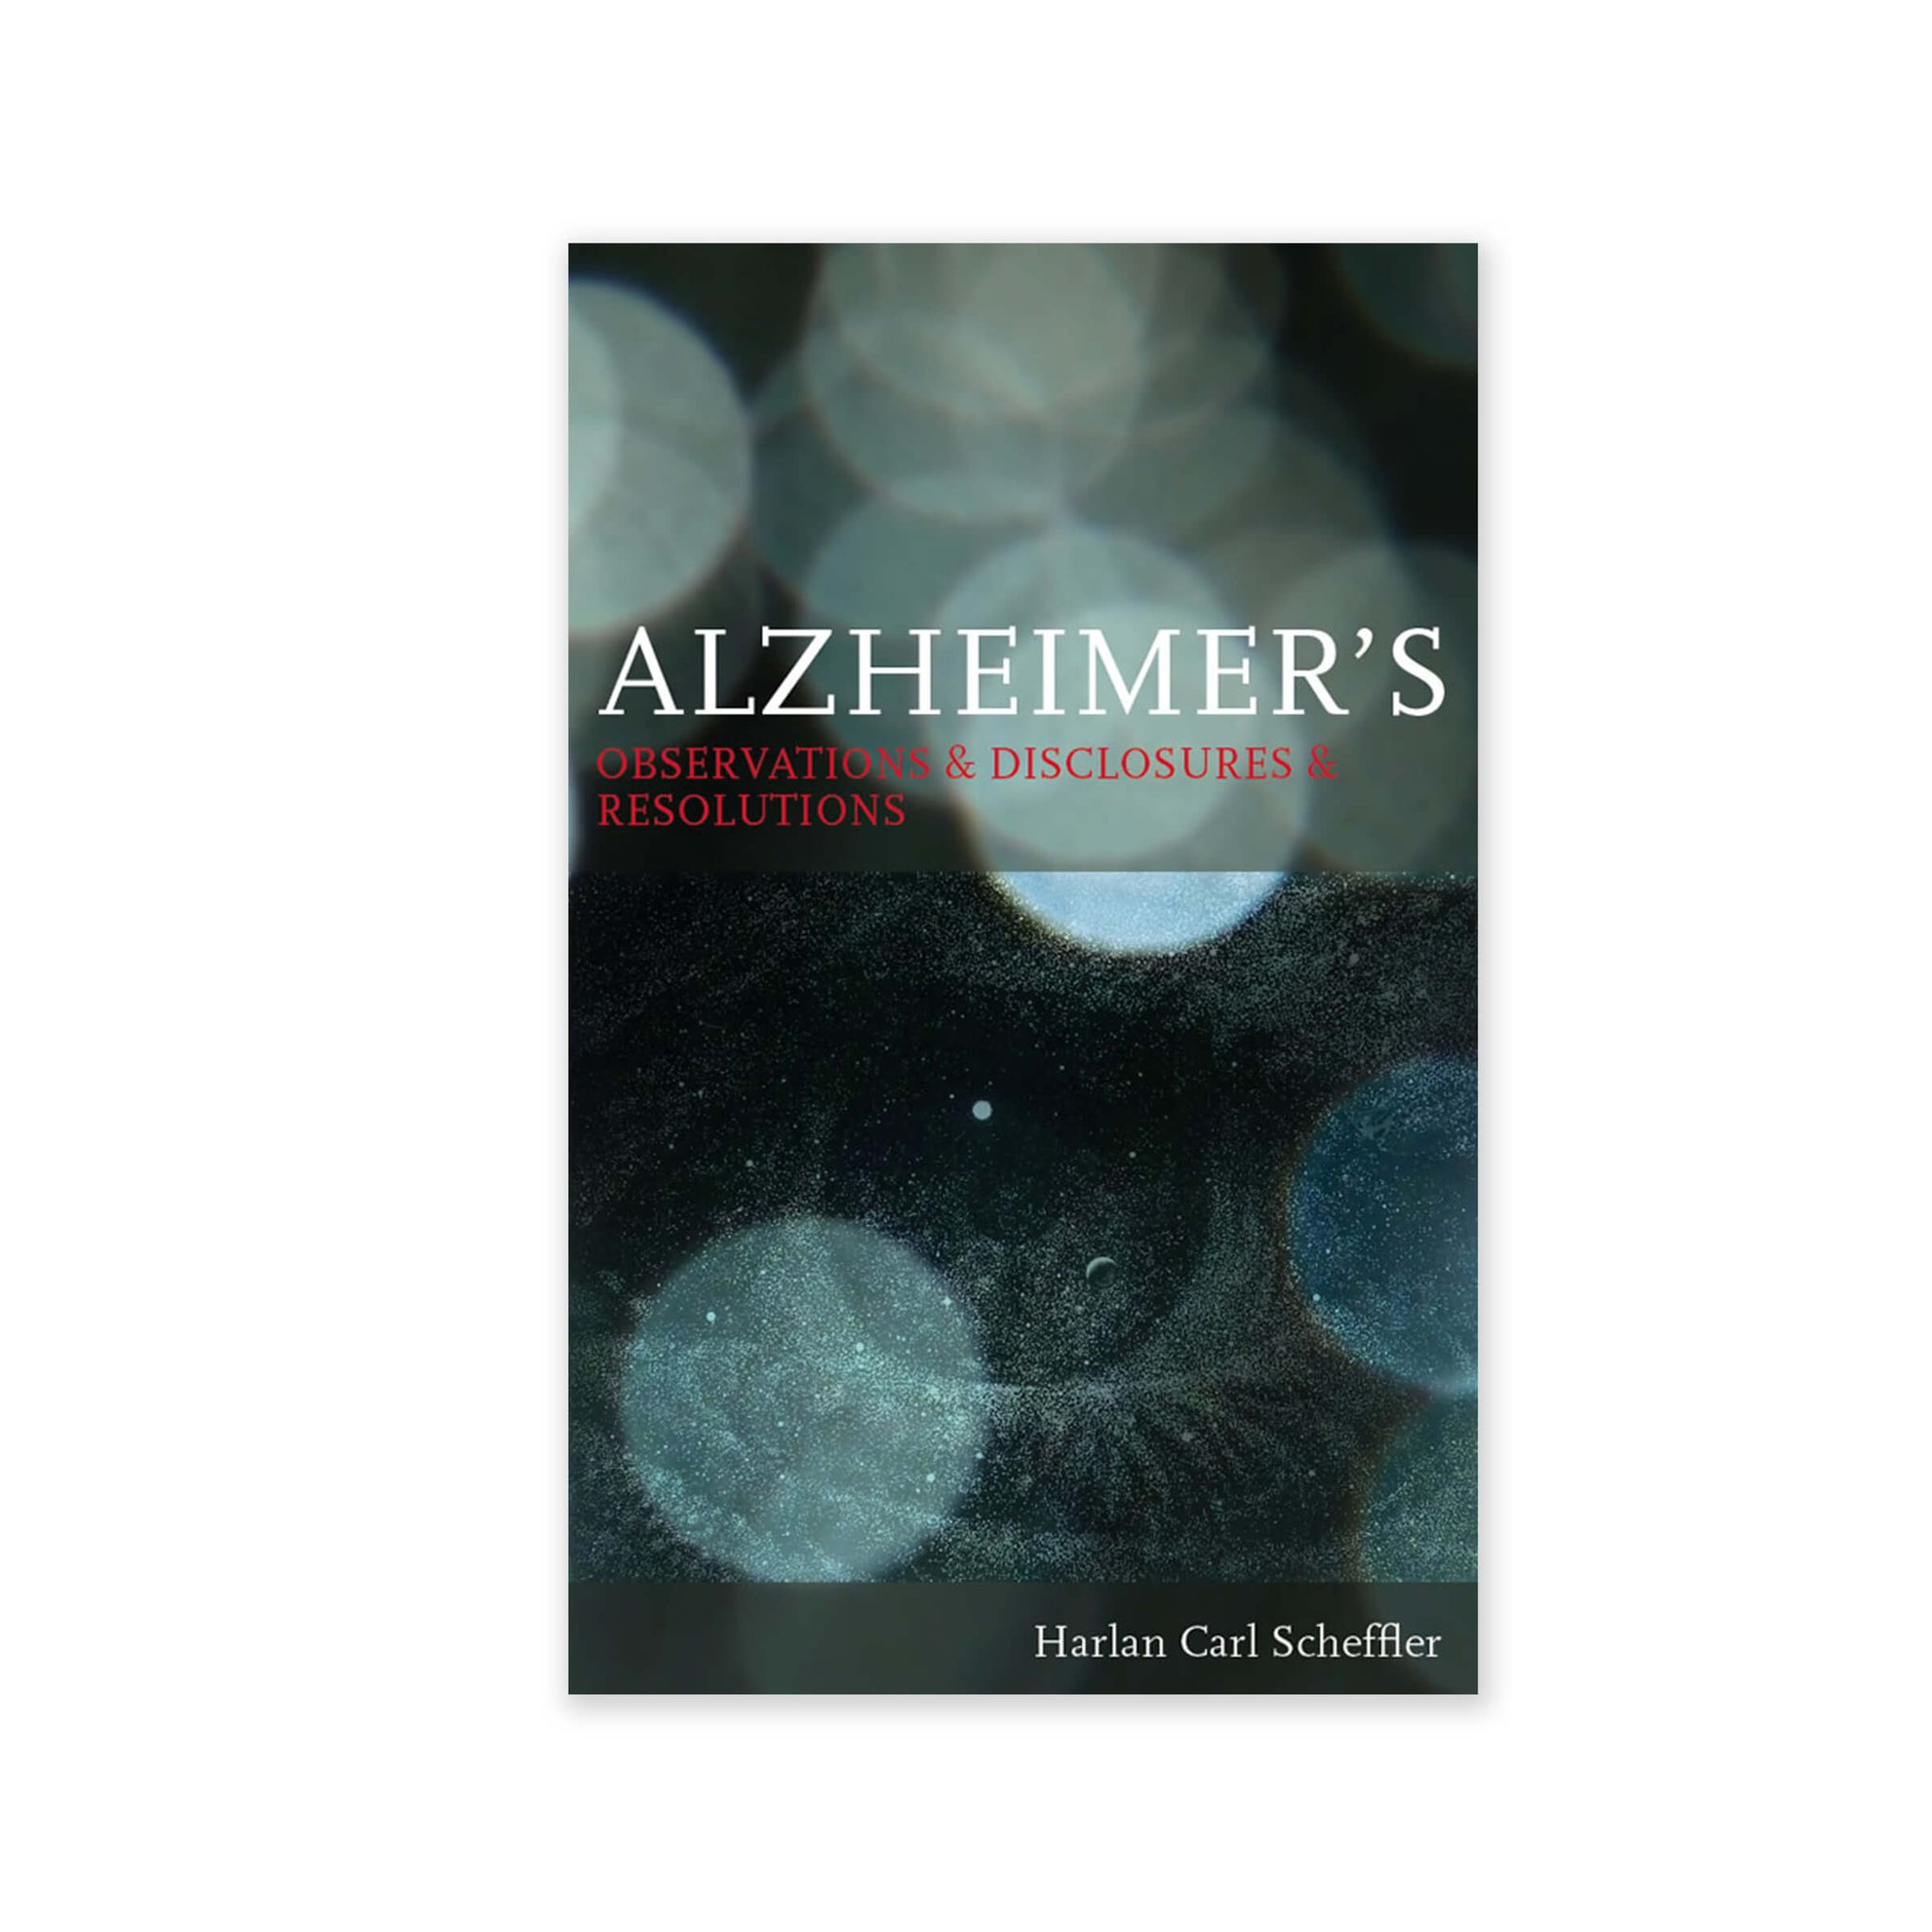 Alzheimers - Observations & Disclosures & Resolutions